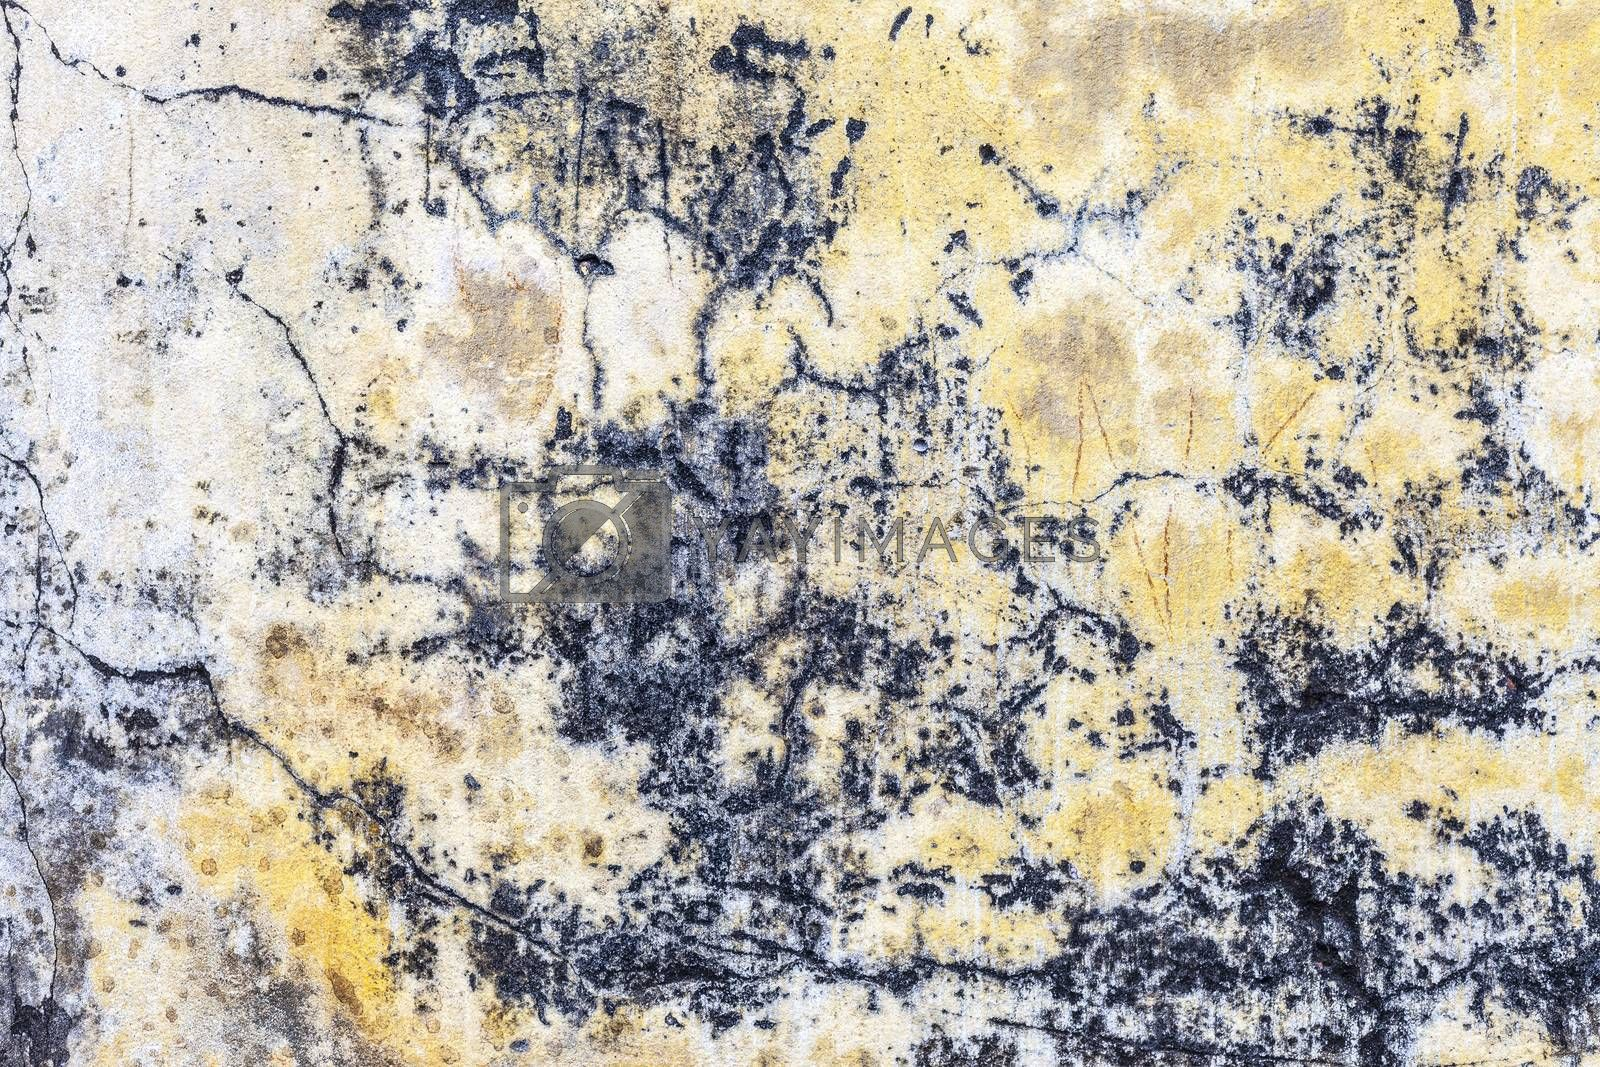 Grungy Concrete background cement old texture wall